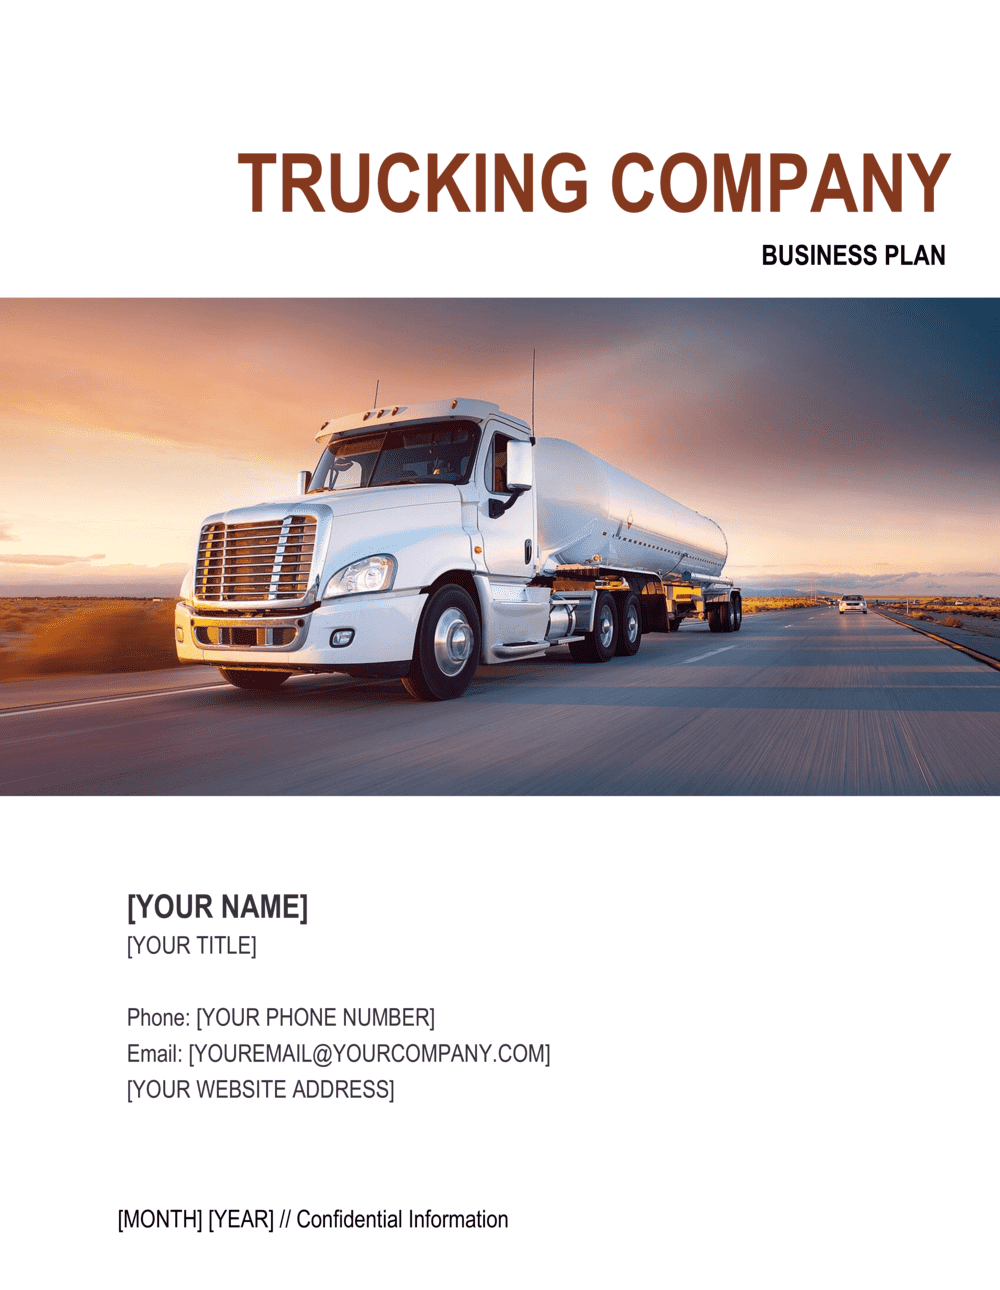 Business-in-a-Box's Trucking Company Business Plan 2 Template